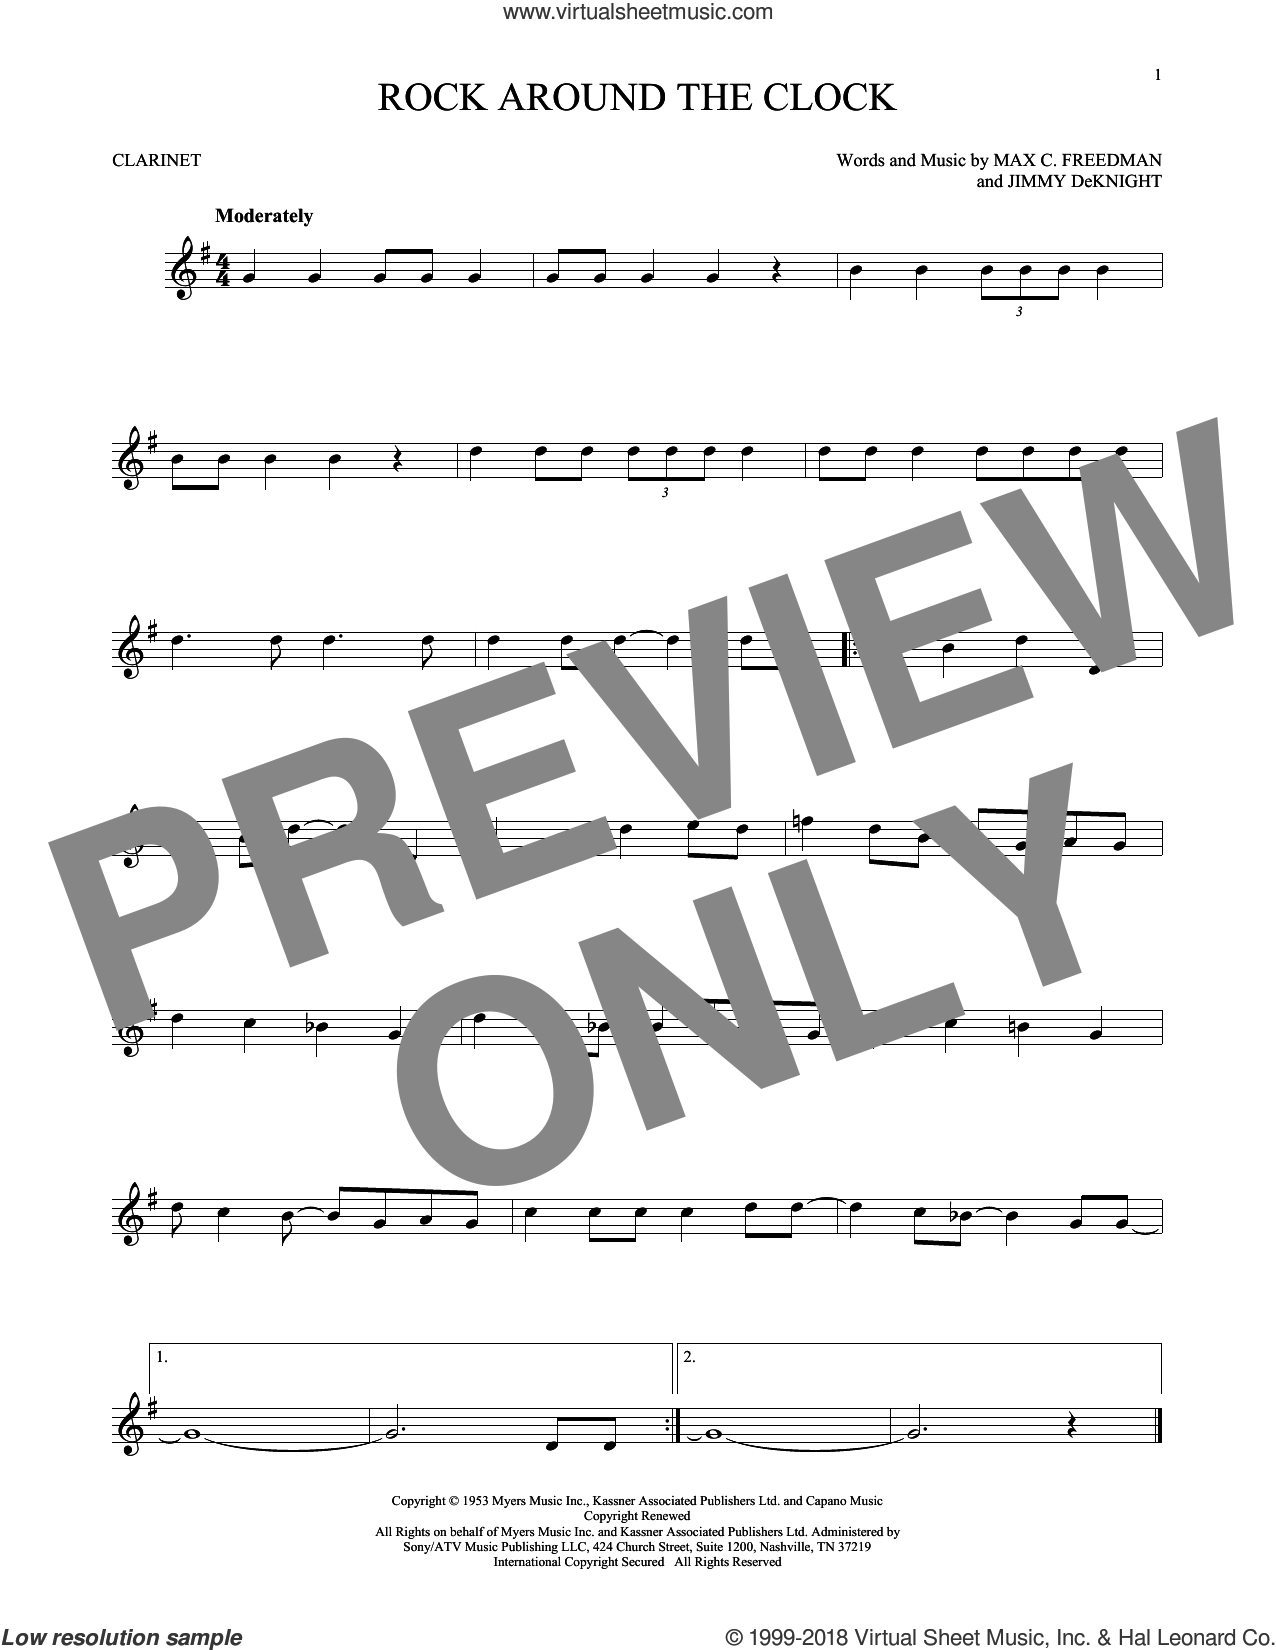 Rock Around The Clock sheet music for clarinet solo by Bill Haley & His Comets, Jimmy DeKnight and Max C. Freedman, intermediate skill level